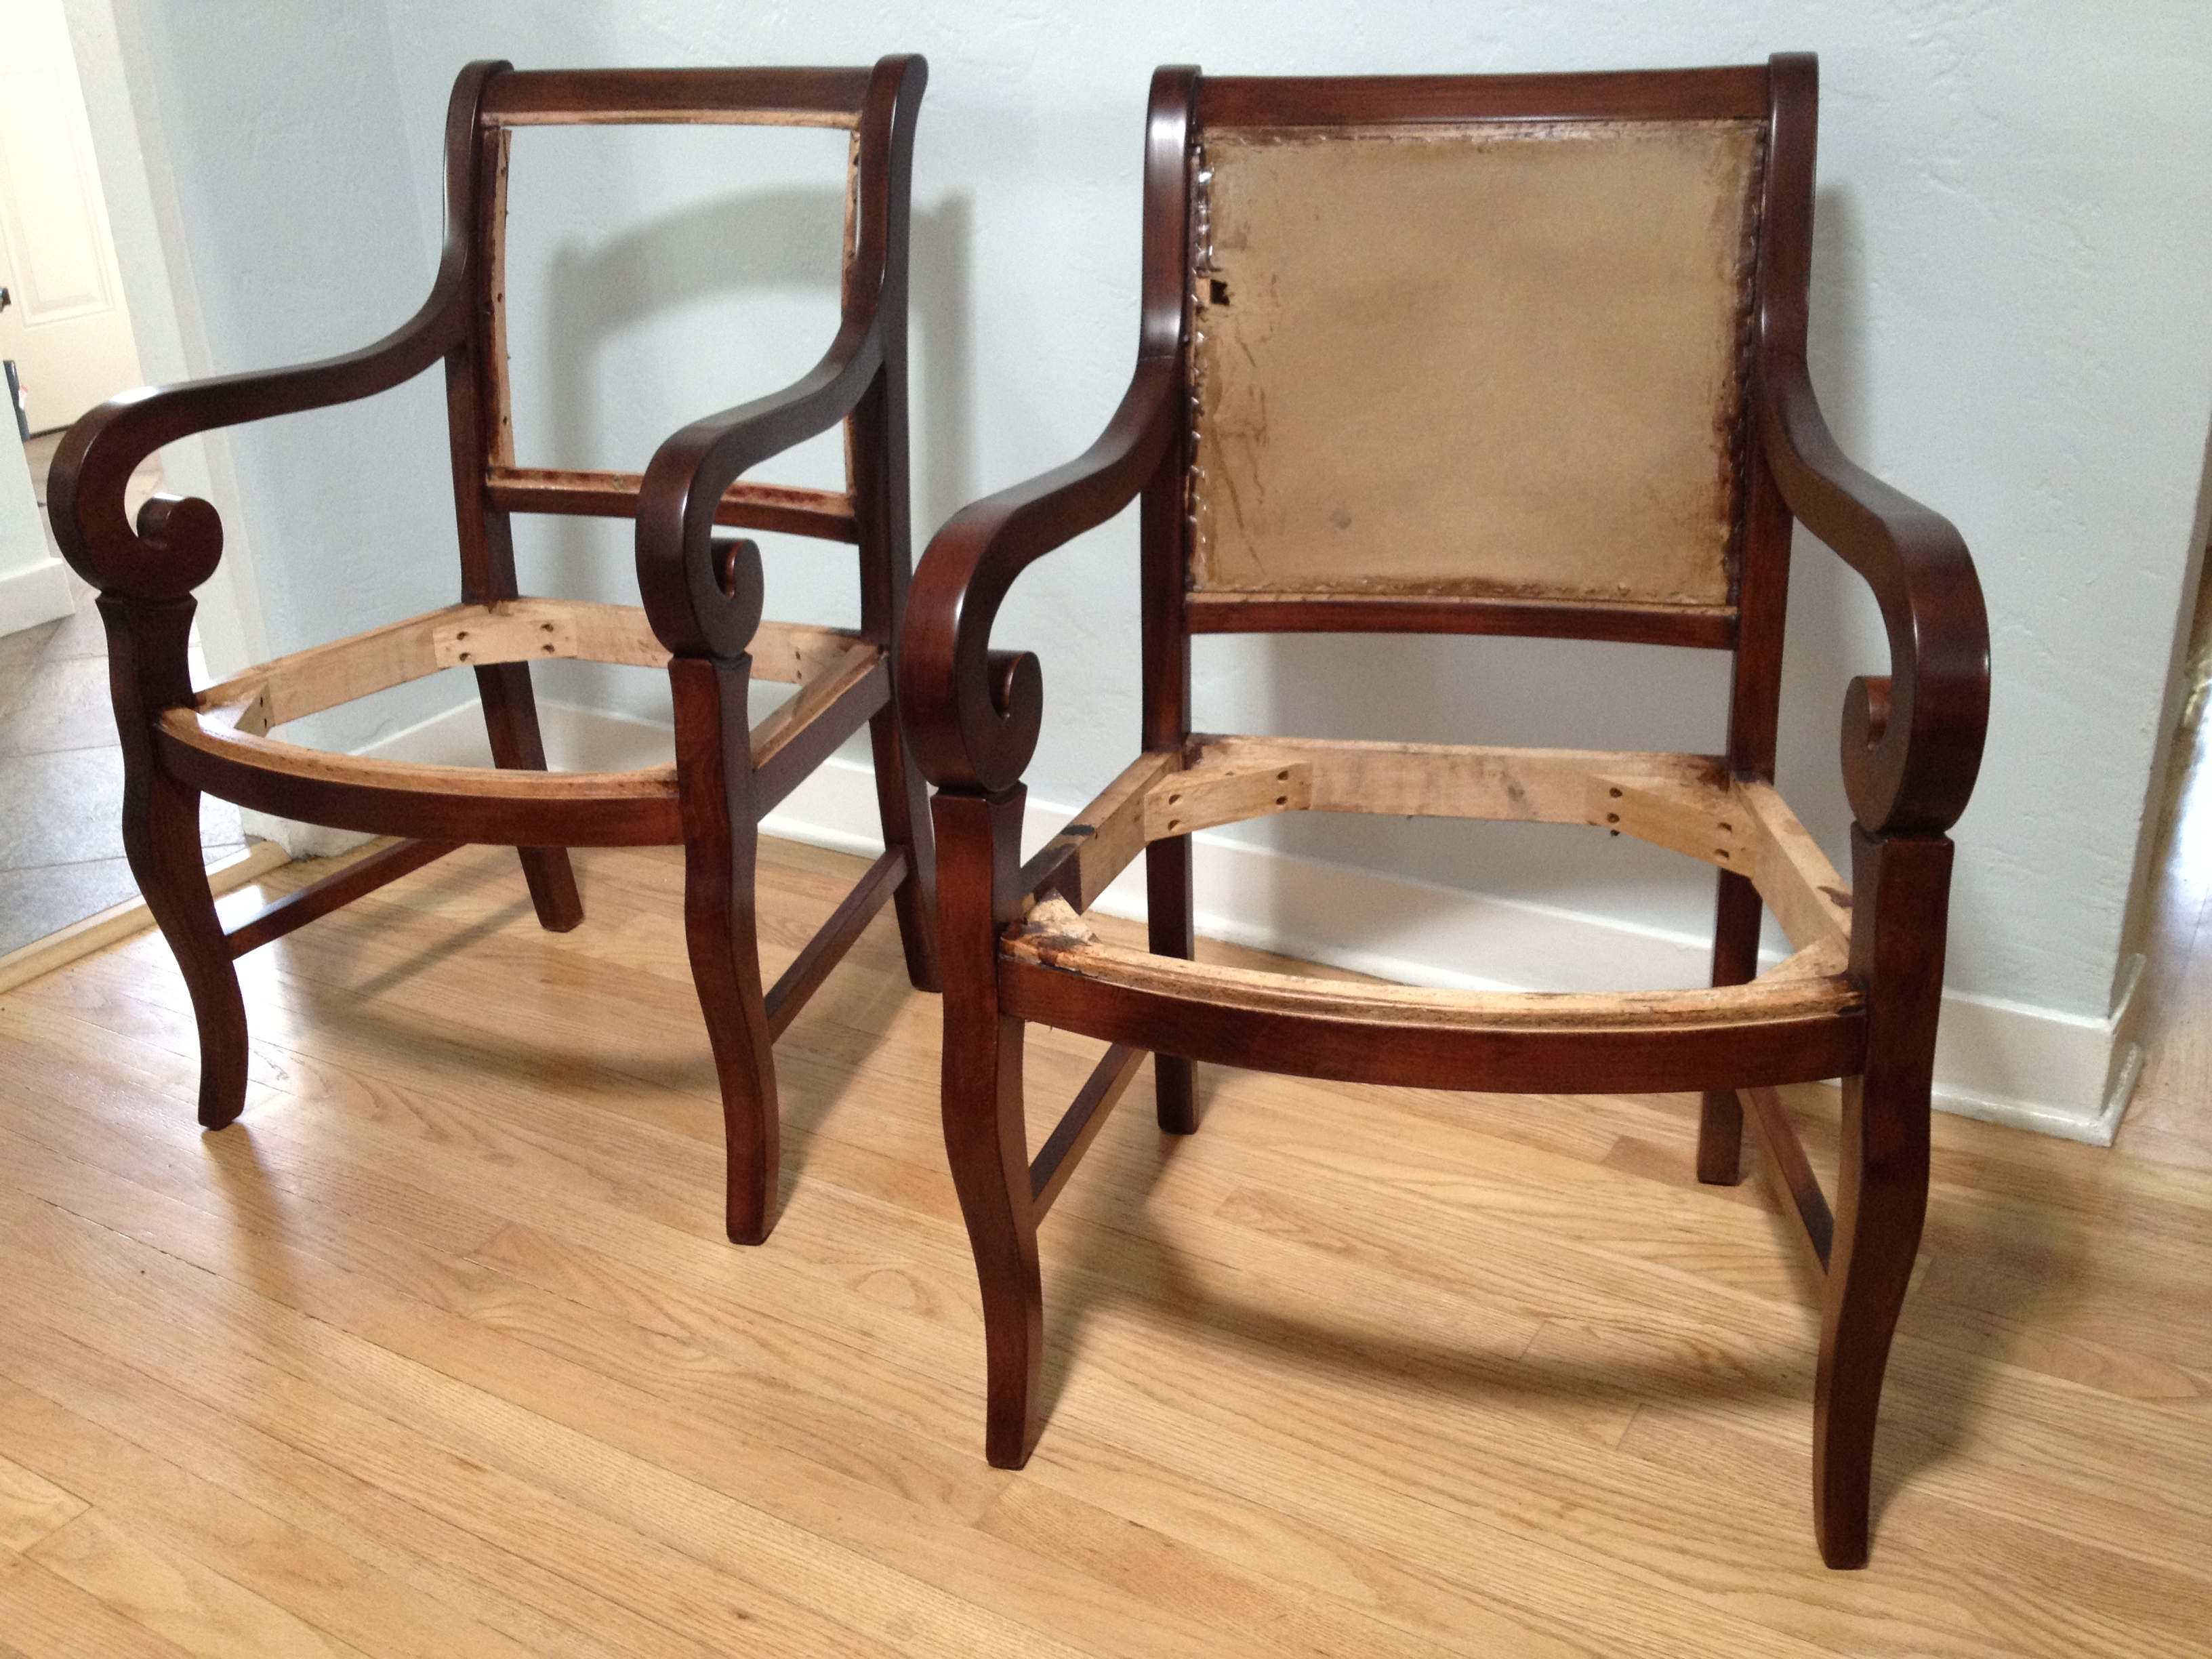 fairfield chairs strip color match and refinish